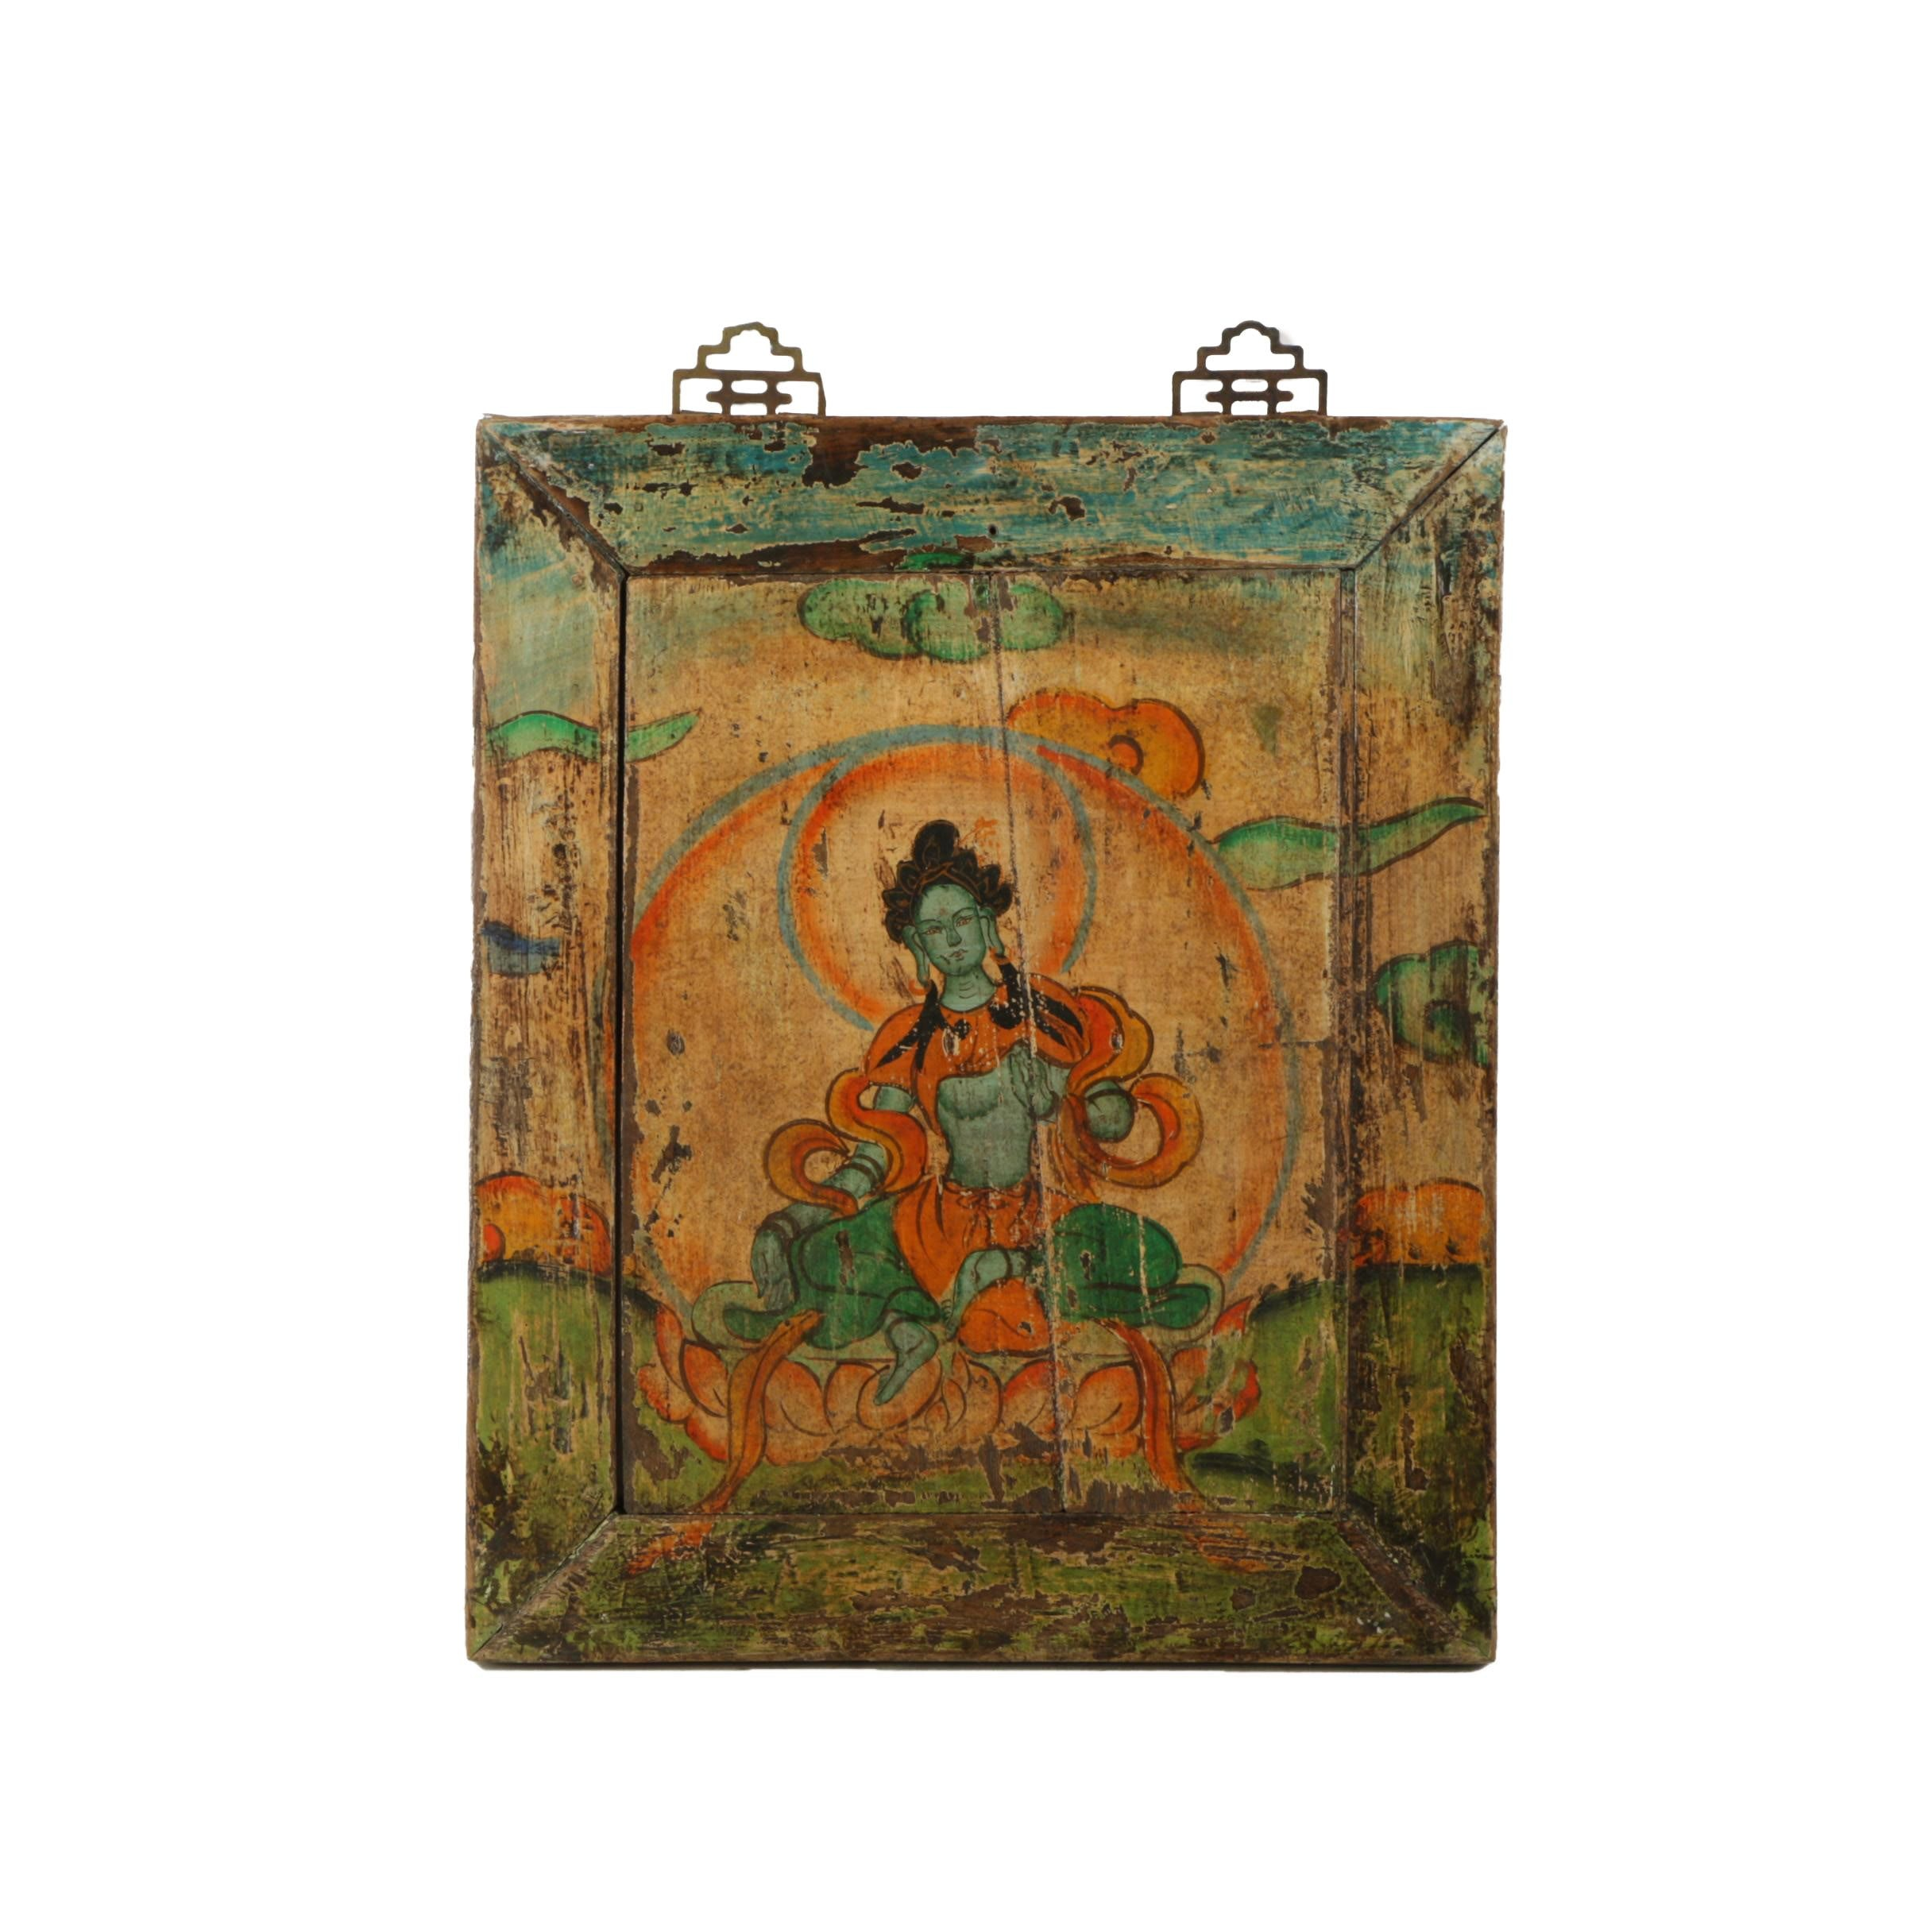 Oil Painting on Panel of a Deity